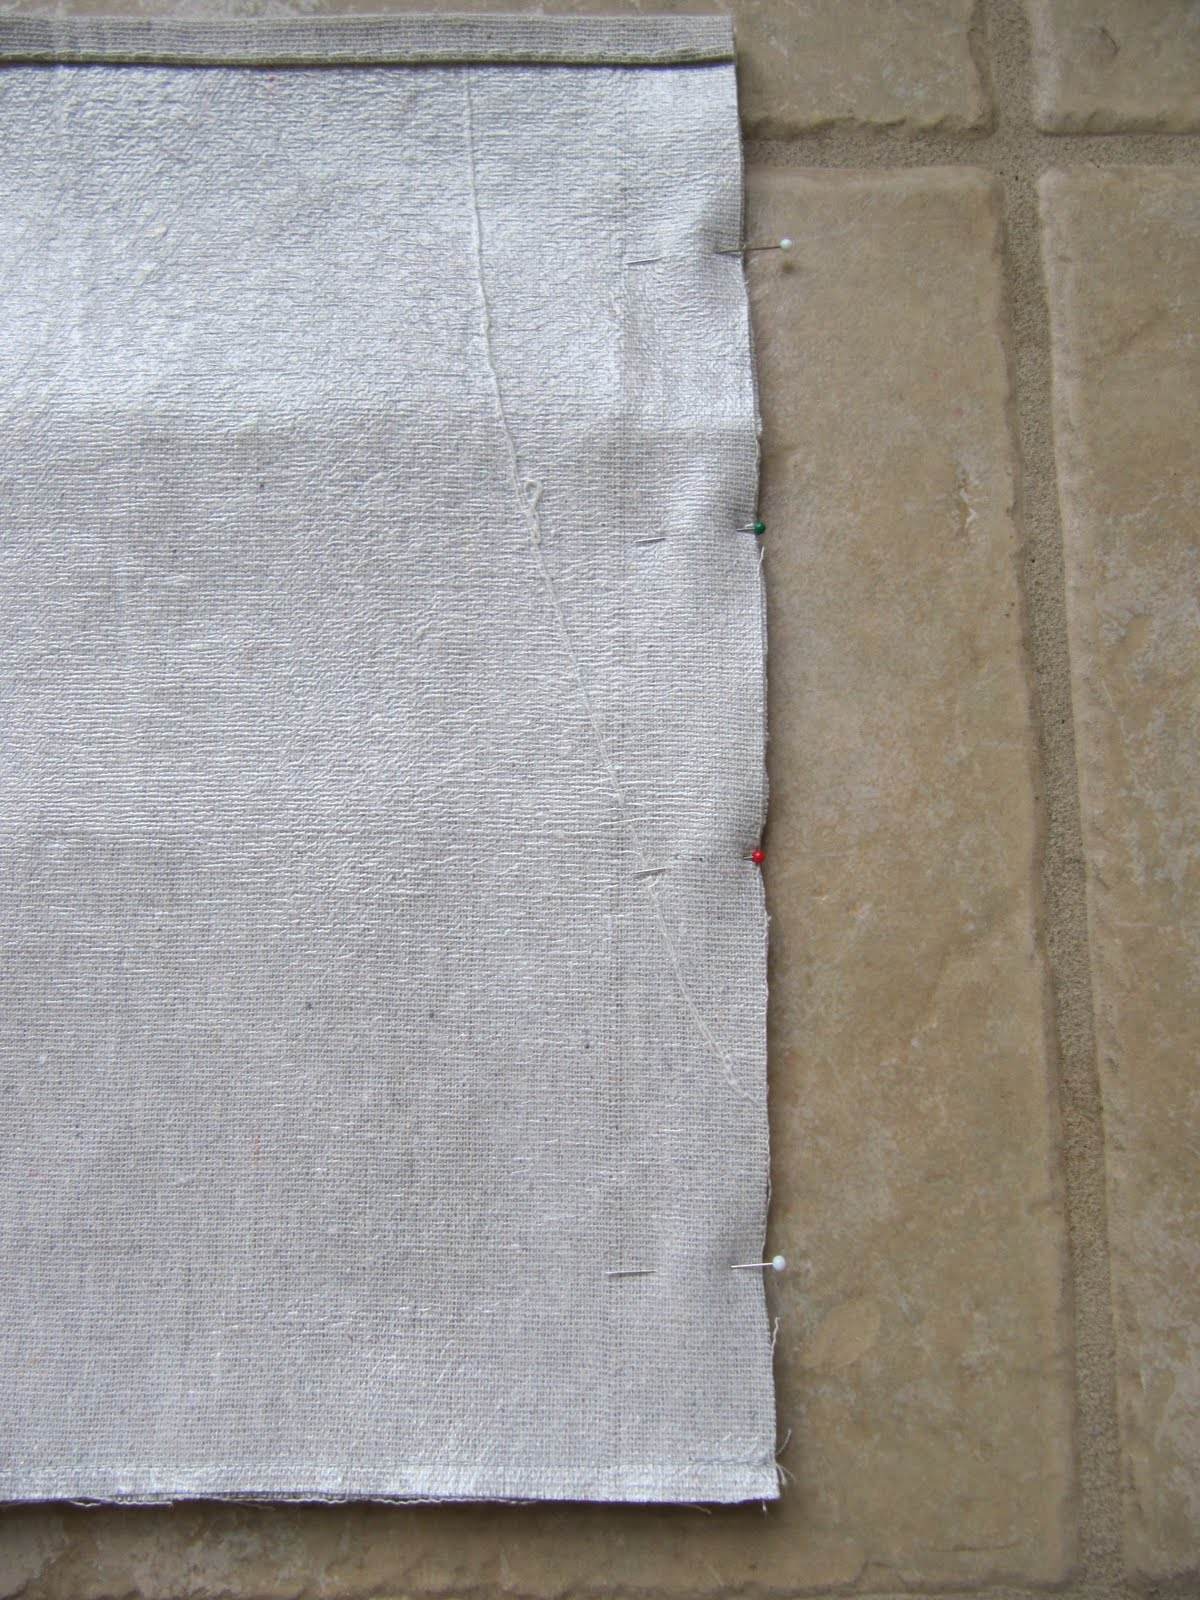 and sew with 12 inch seam you can zig zag over this to prevent fraying and add a finished edge